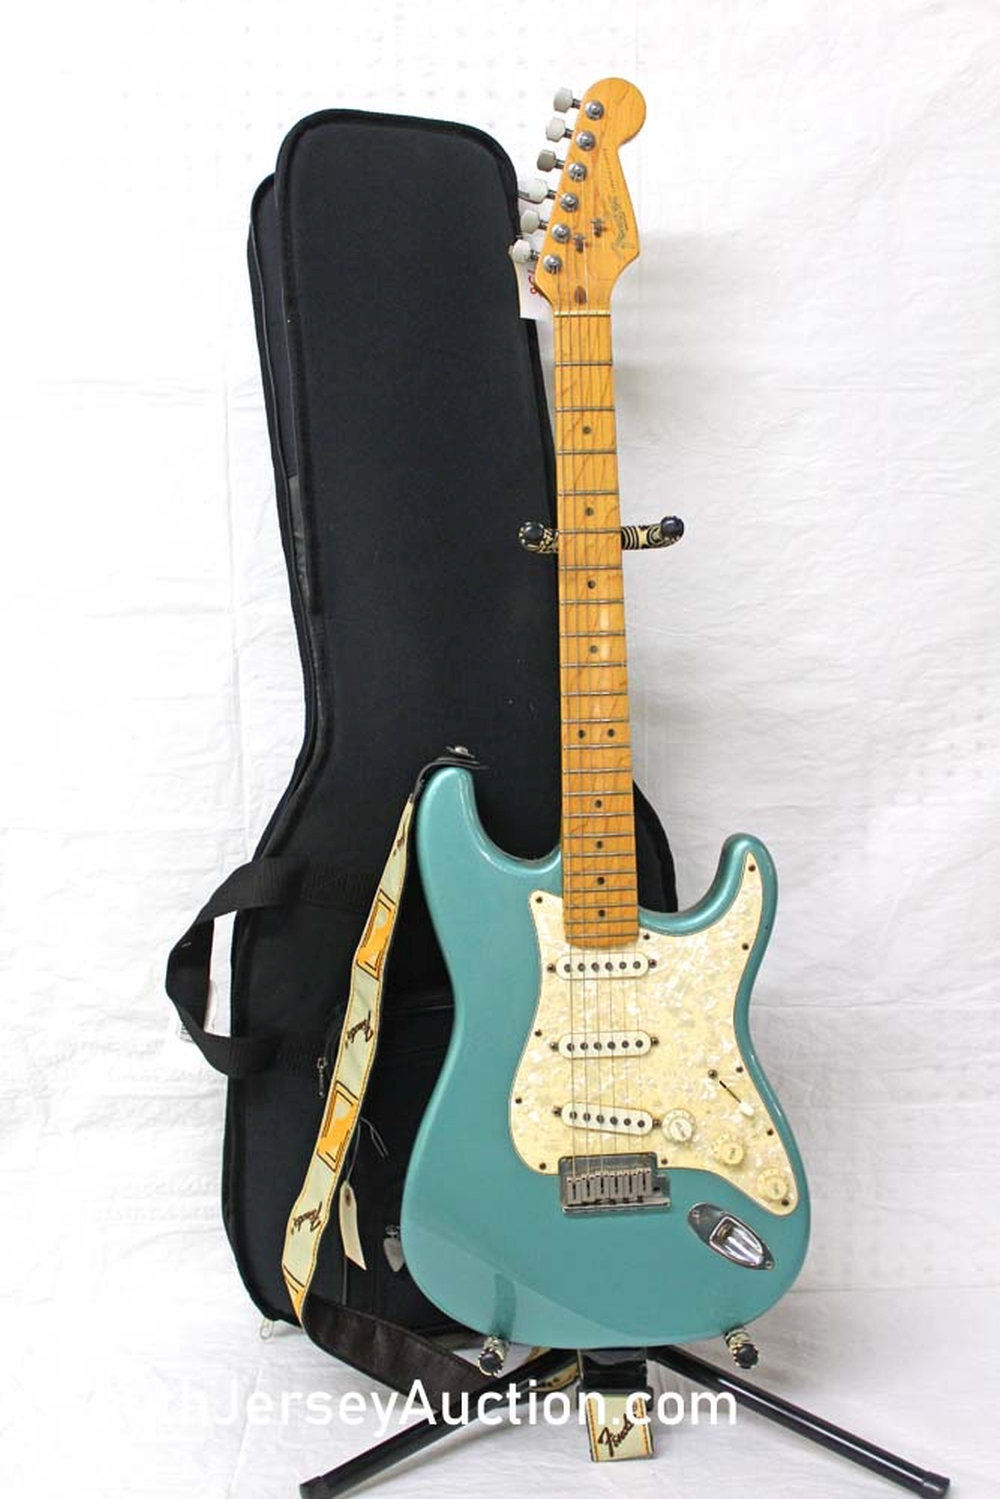 1997 Fender Stratocaster, made in the US, Pearloid pick guard, Rare Teal Green color, single single single pickups, s/n n7223646, maple fretboard, tail stock has been blocked, with soft gig bag, excellent condition